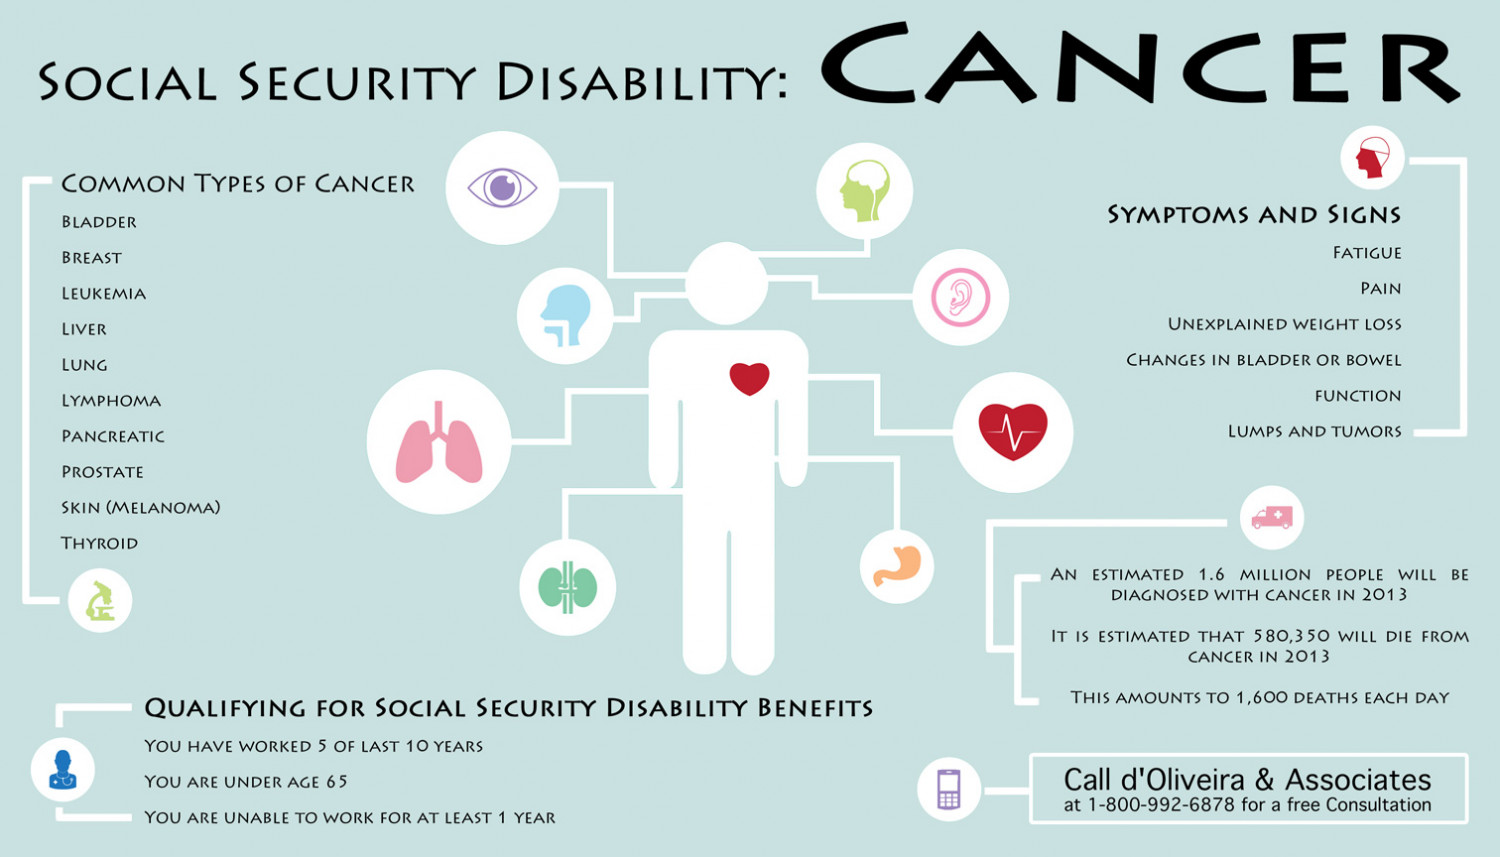 Social Security Disability: Cancer Infographic